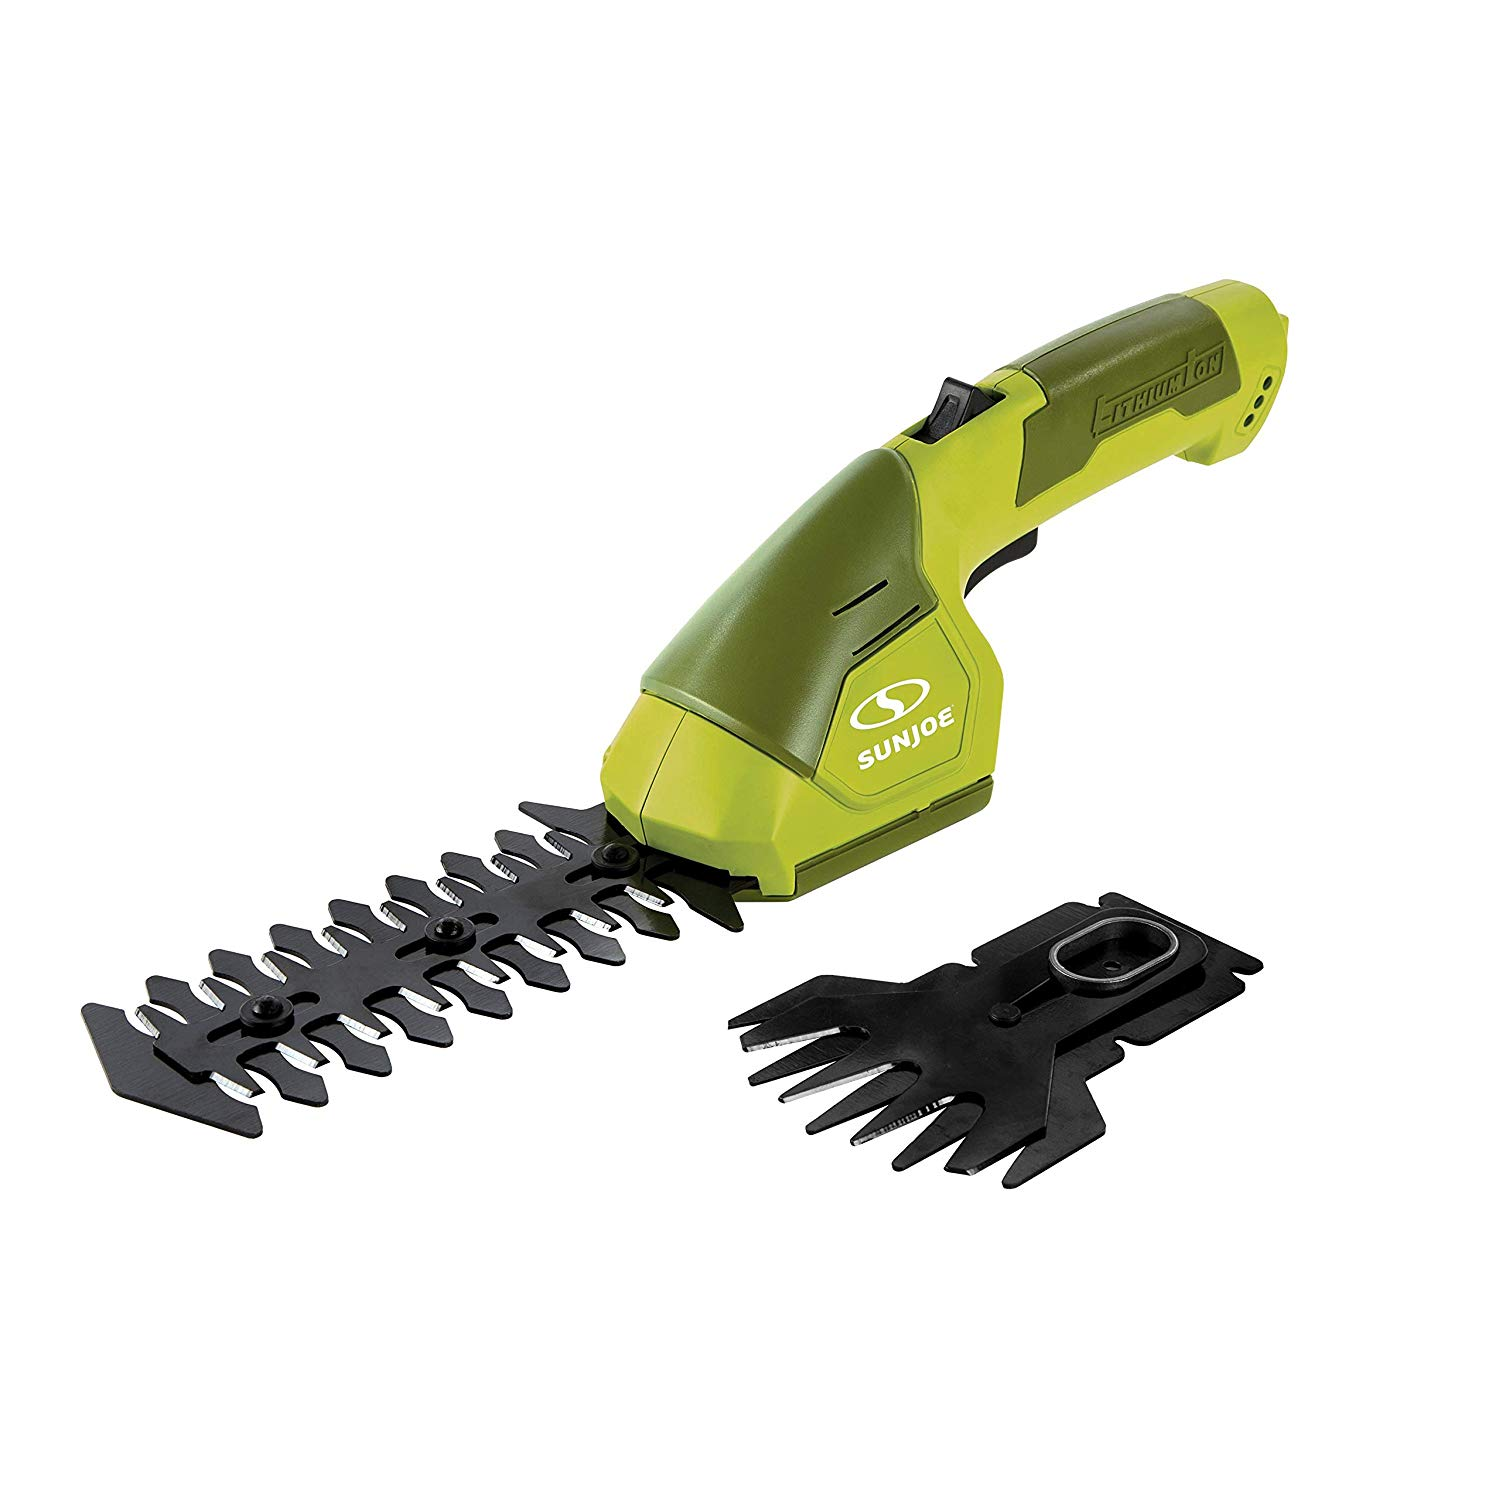 HJ604C 2-in-1 Cordless Grass Shear and Hedger by Snow Joe